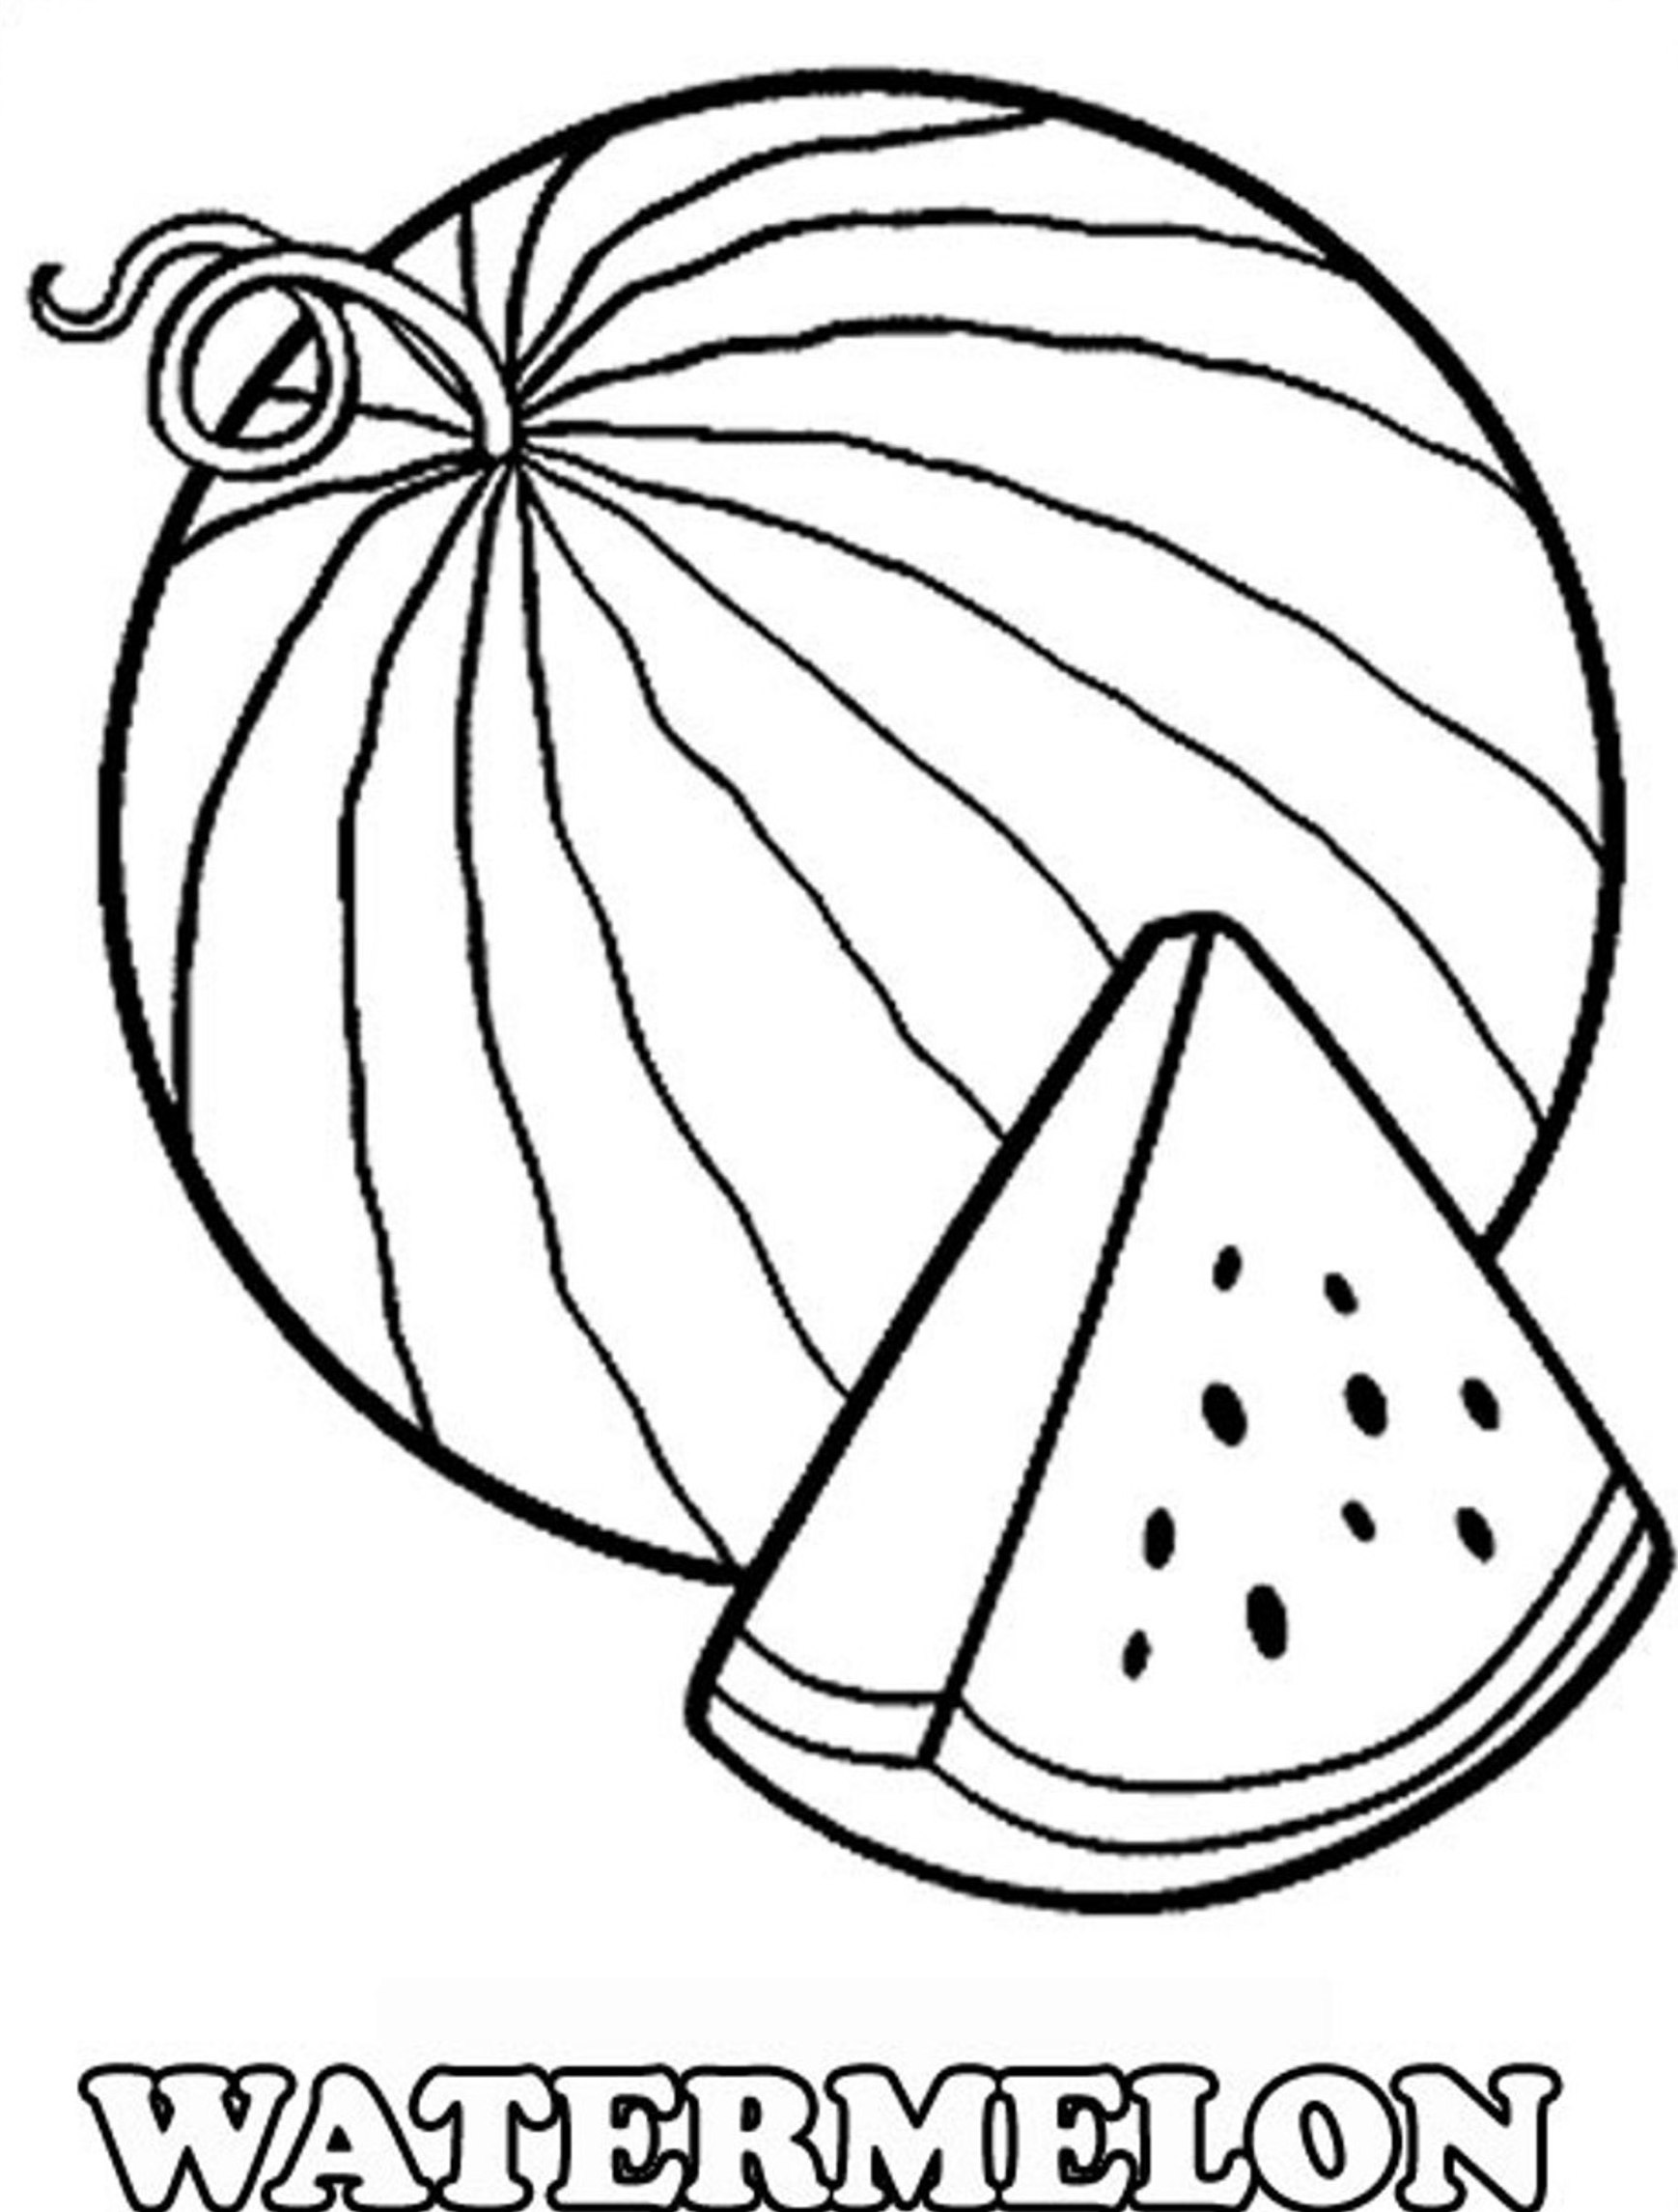 Watermelon Slice Drawing at GetDrawings.com | Free for personal use ...